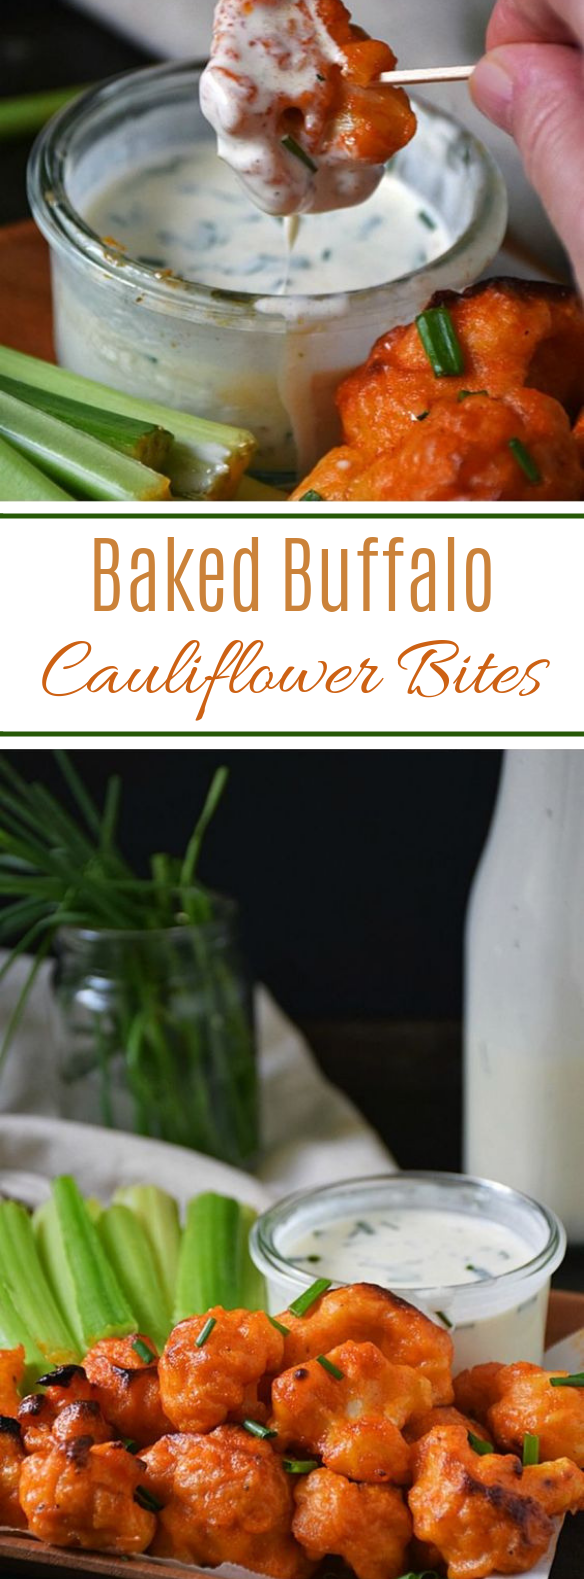 Baked Buffalo Cauliflower Bites #appetizer #vegetarian